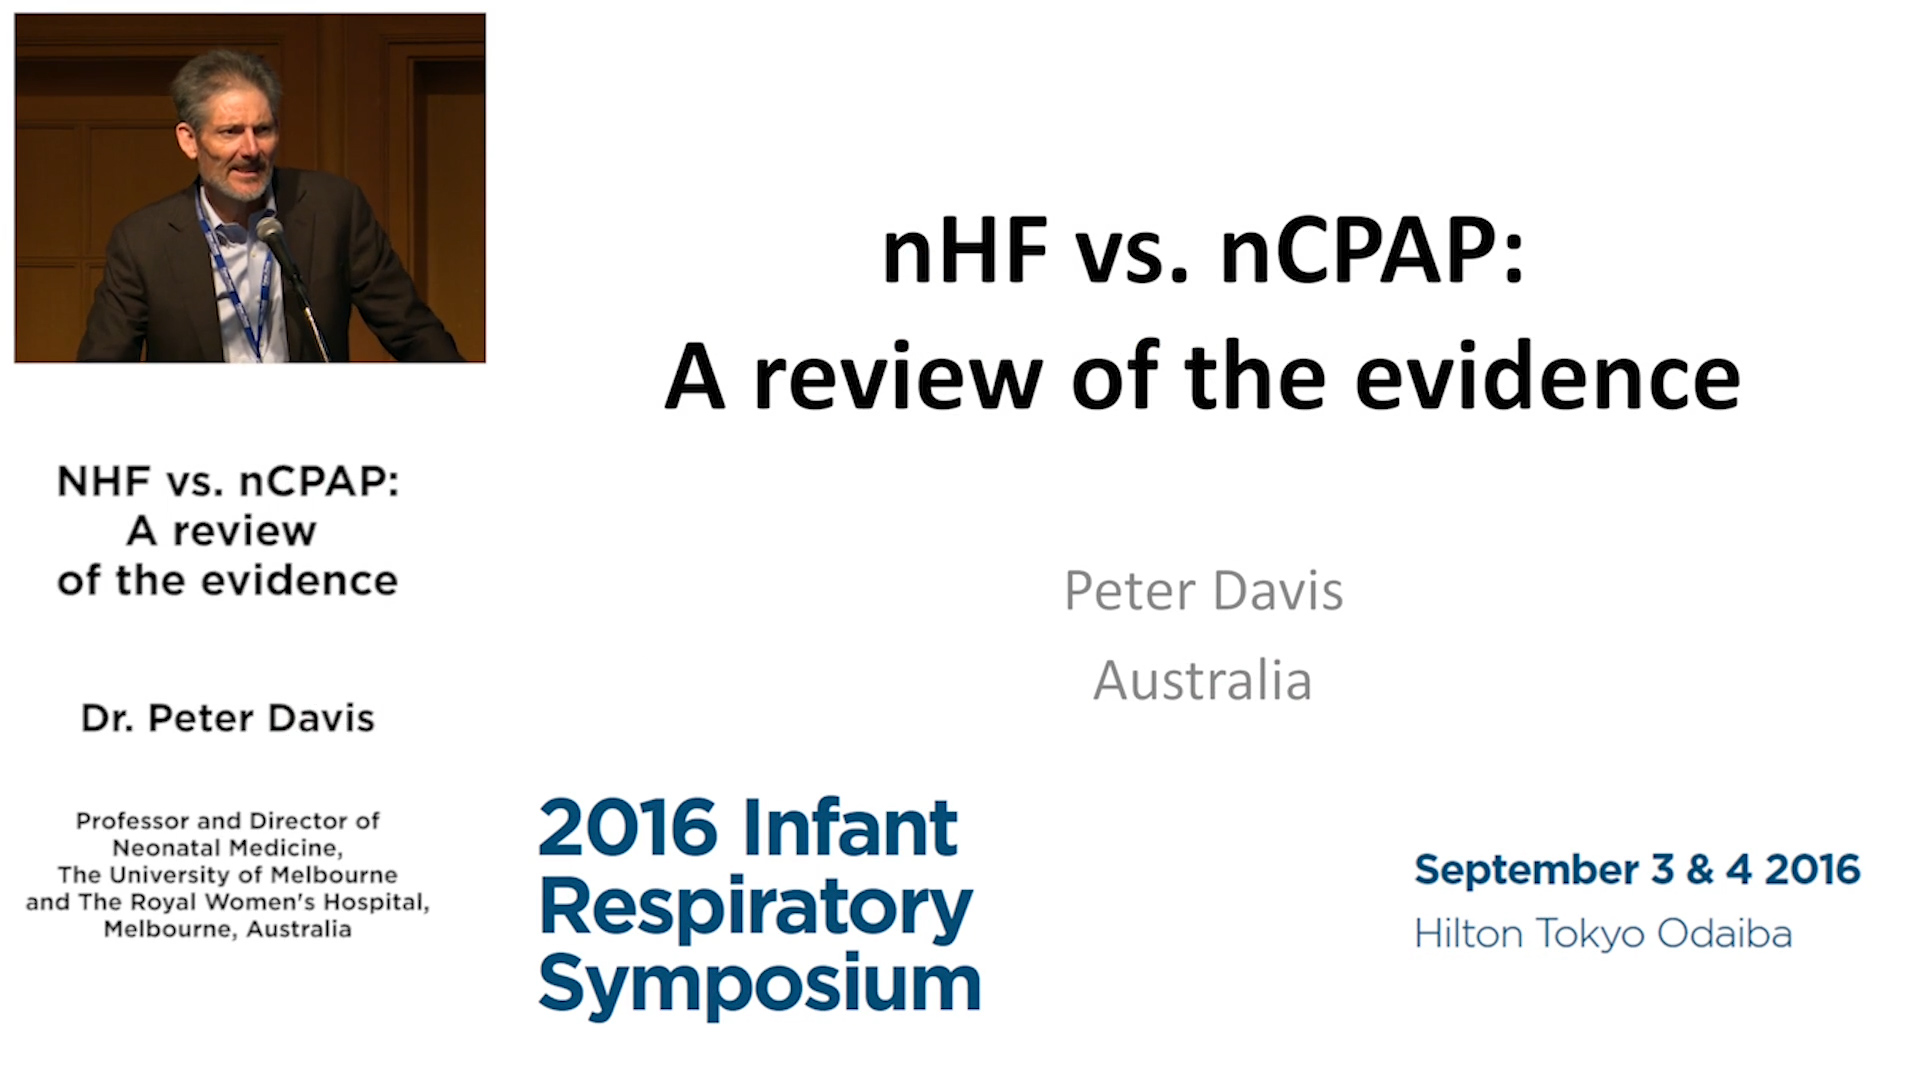 NHF vs. nCPAP: A review of the evidence - Dr Peter Davis